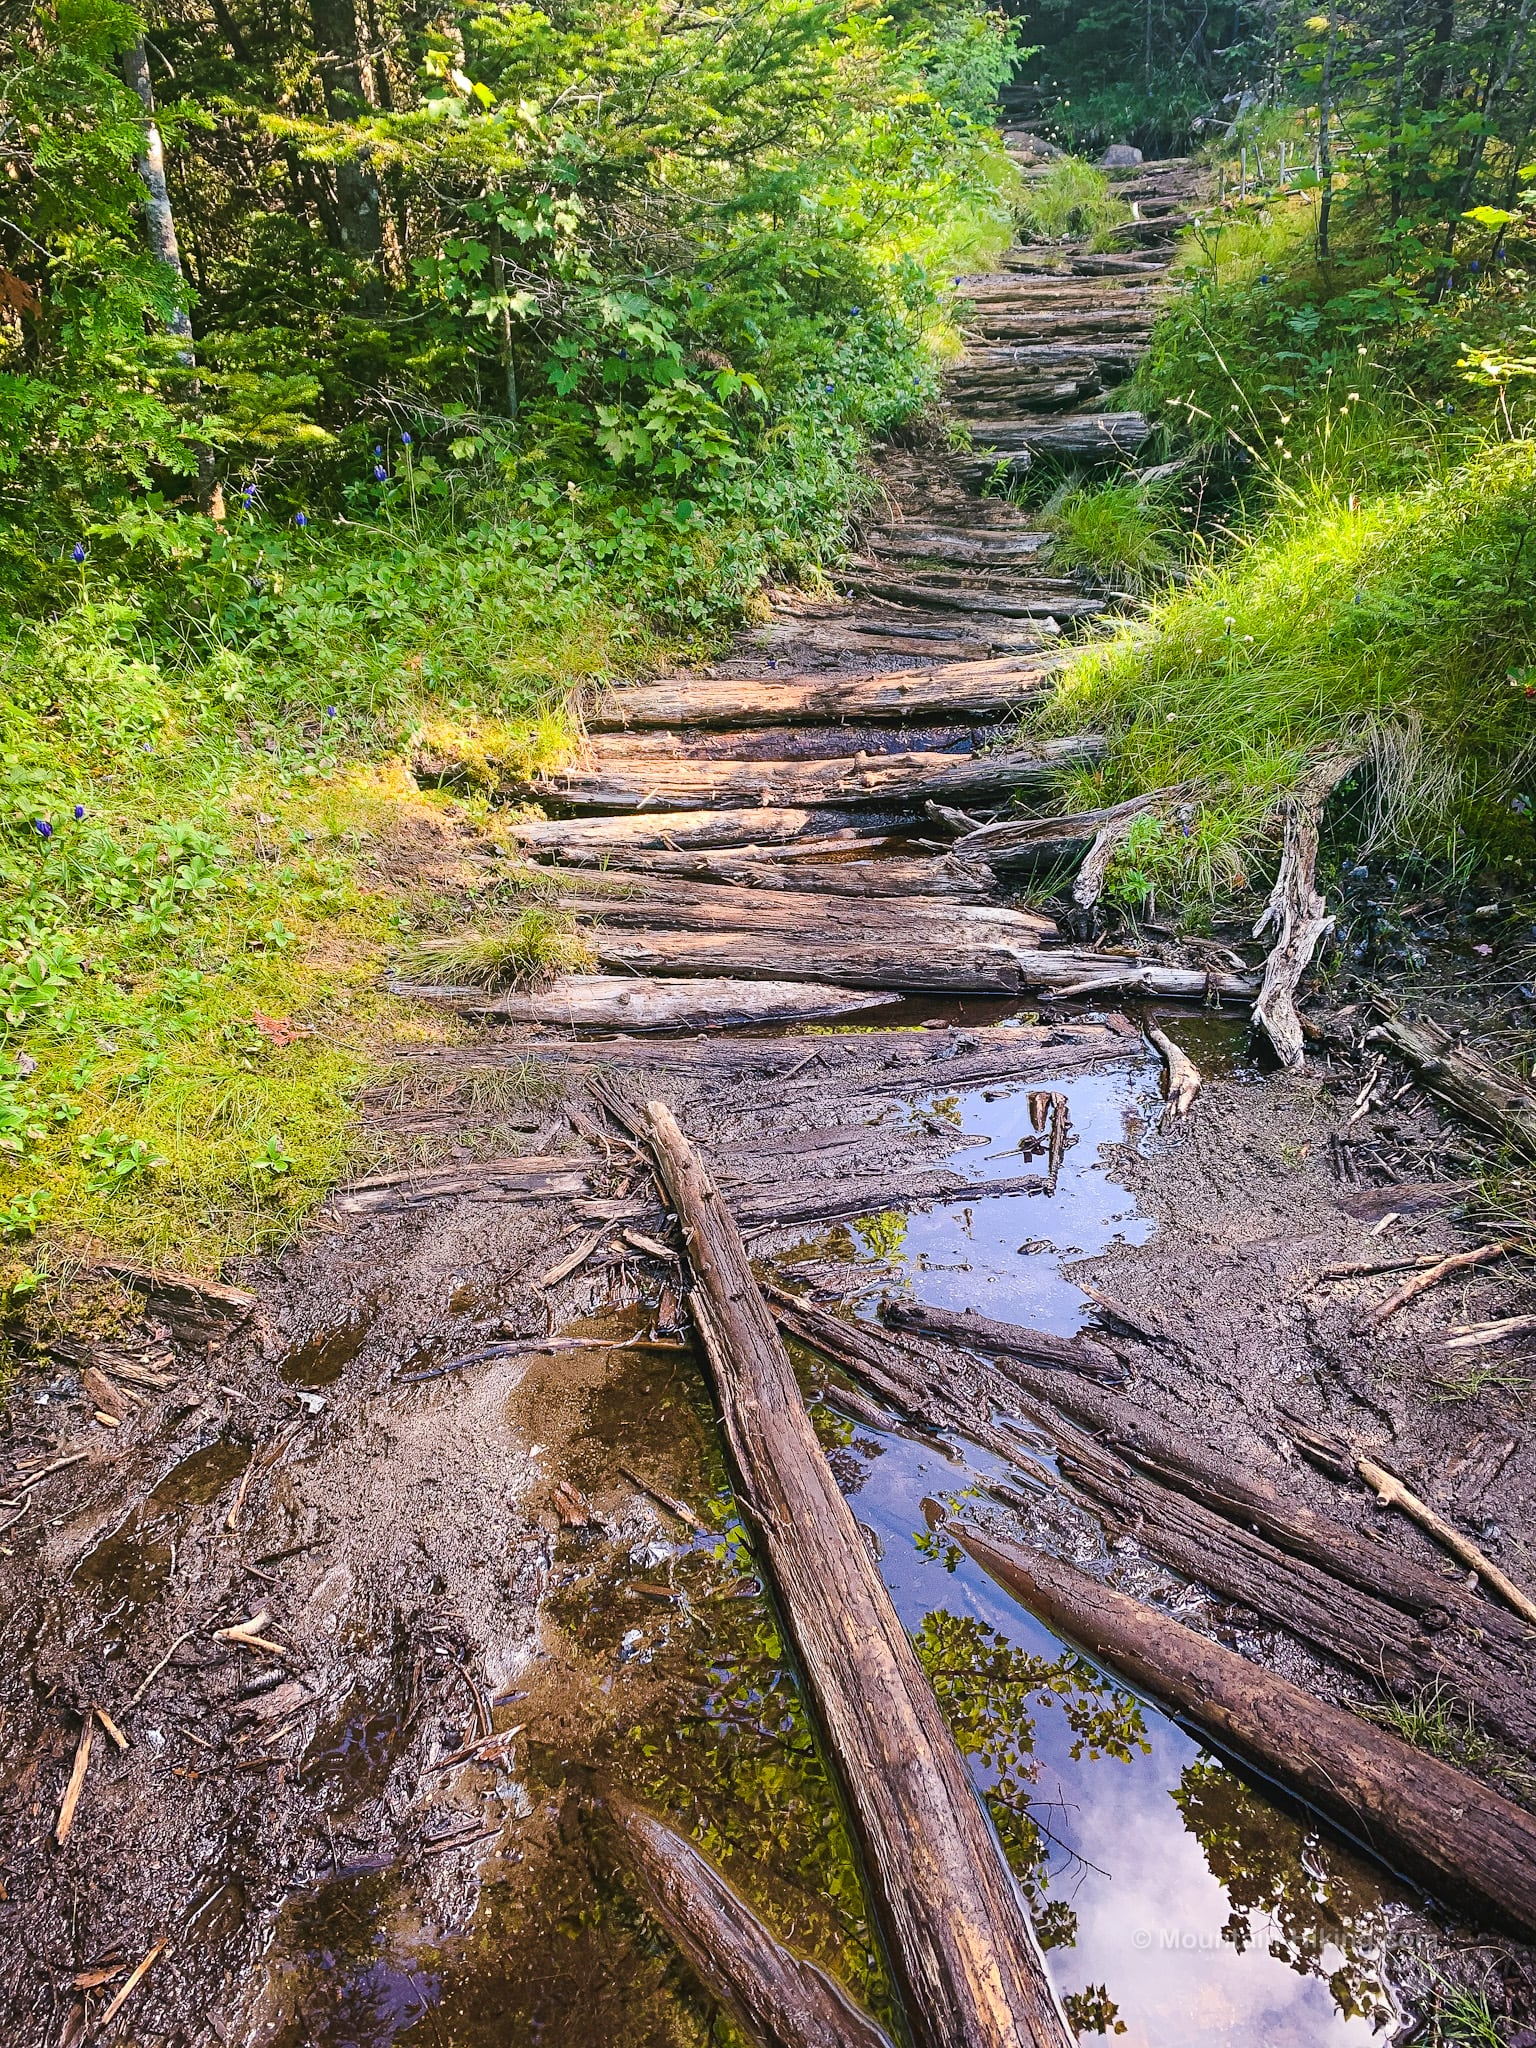 logs over muddy trail section